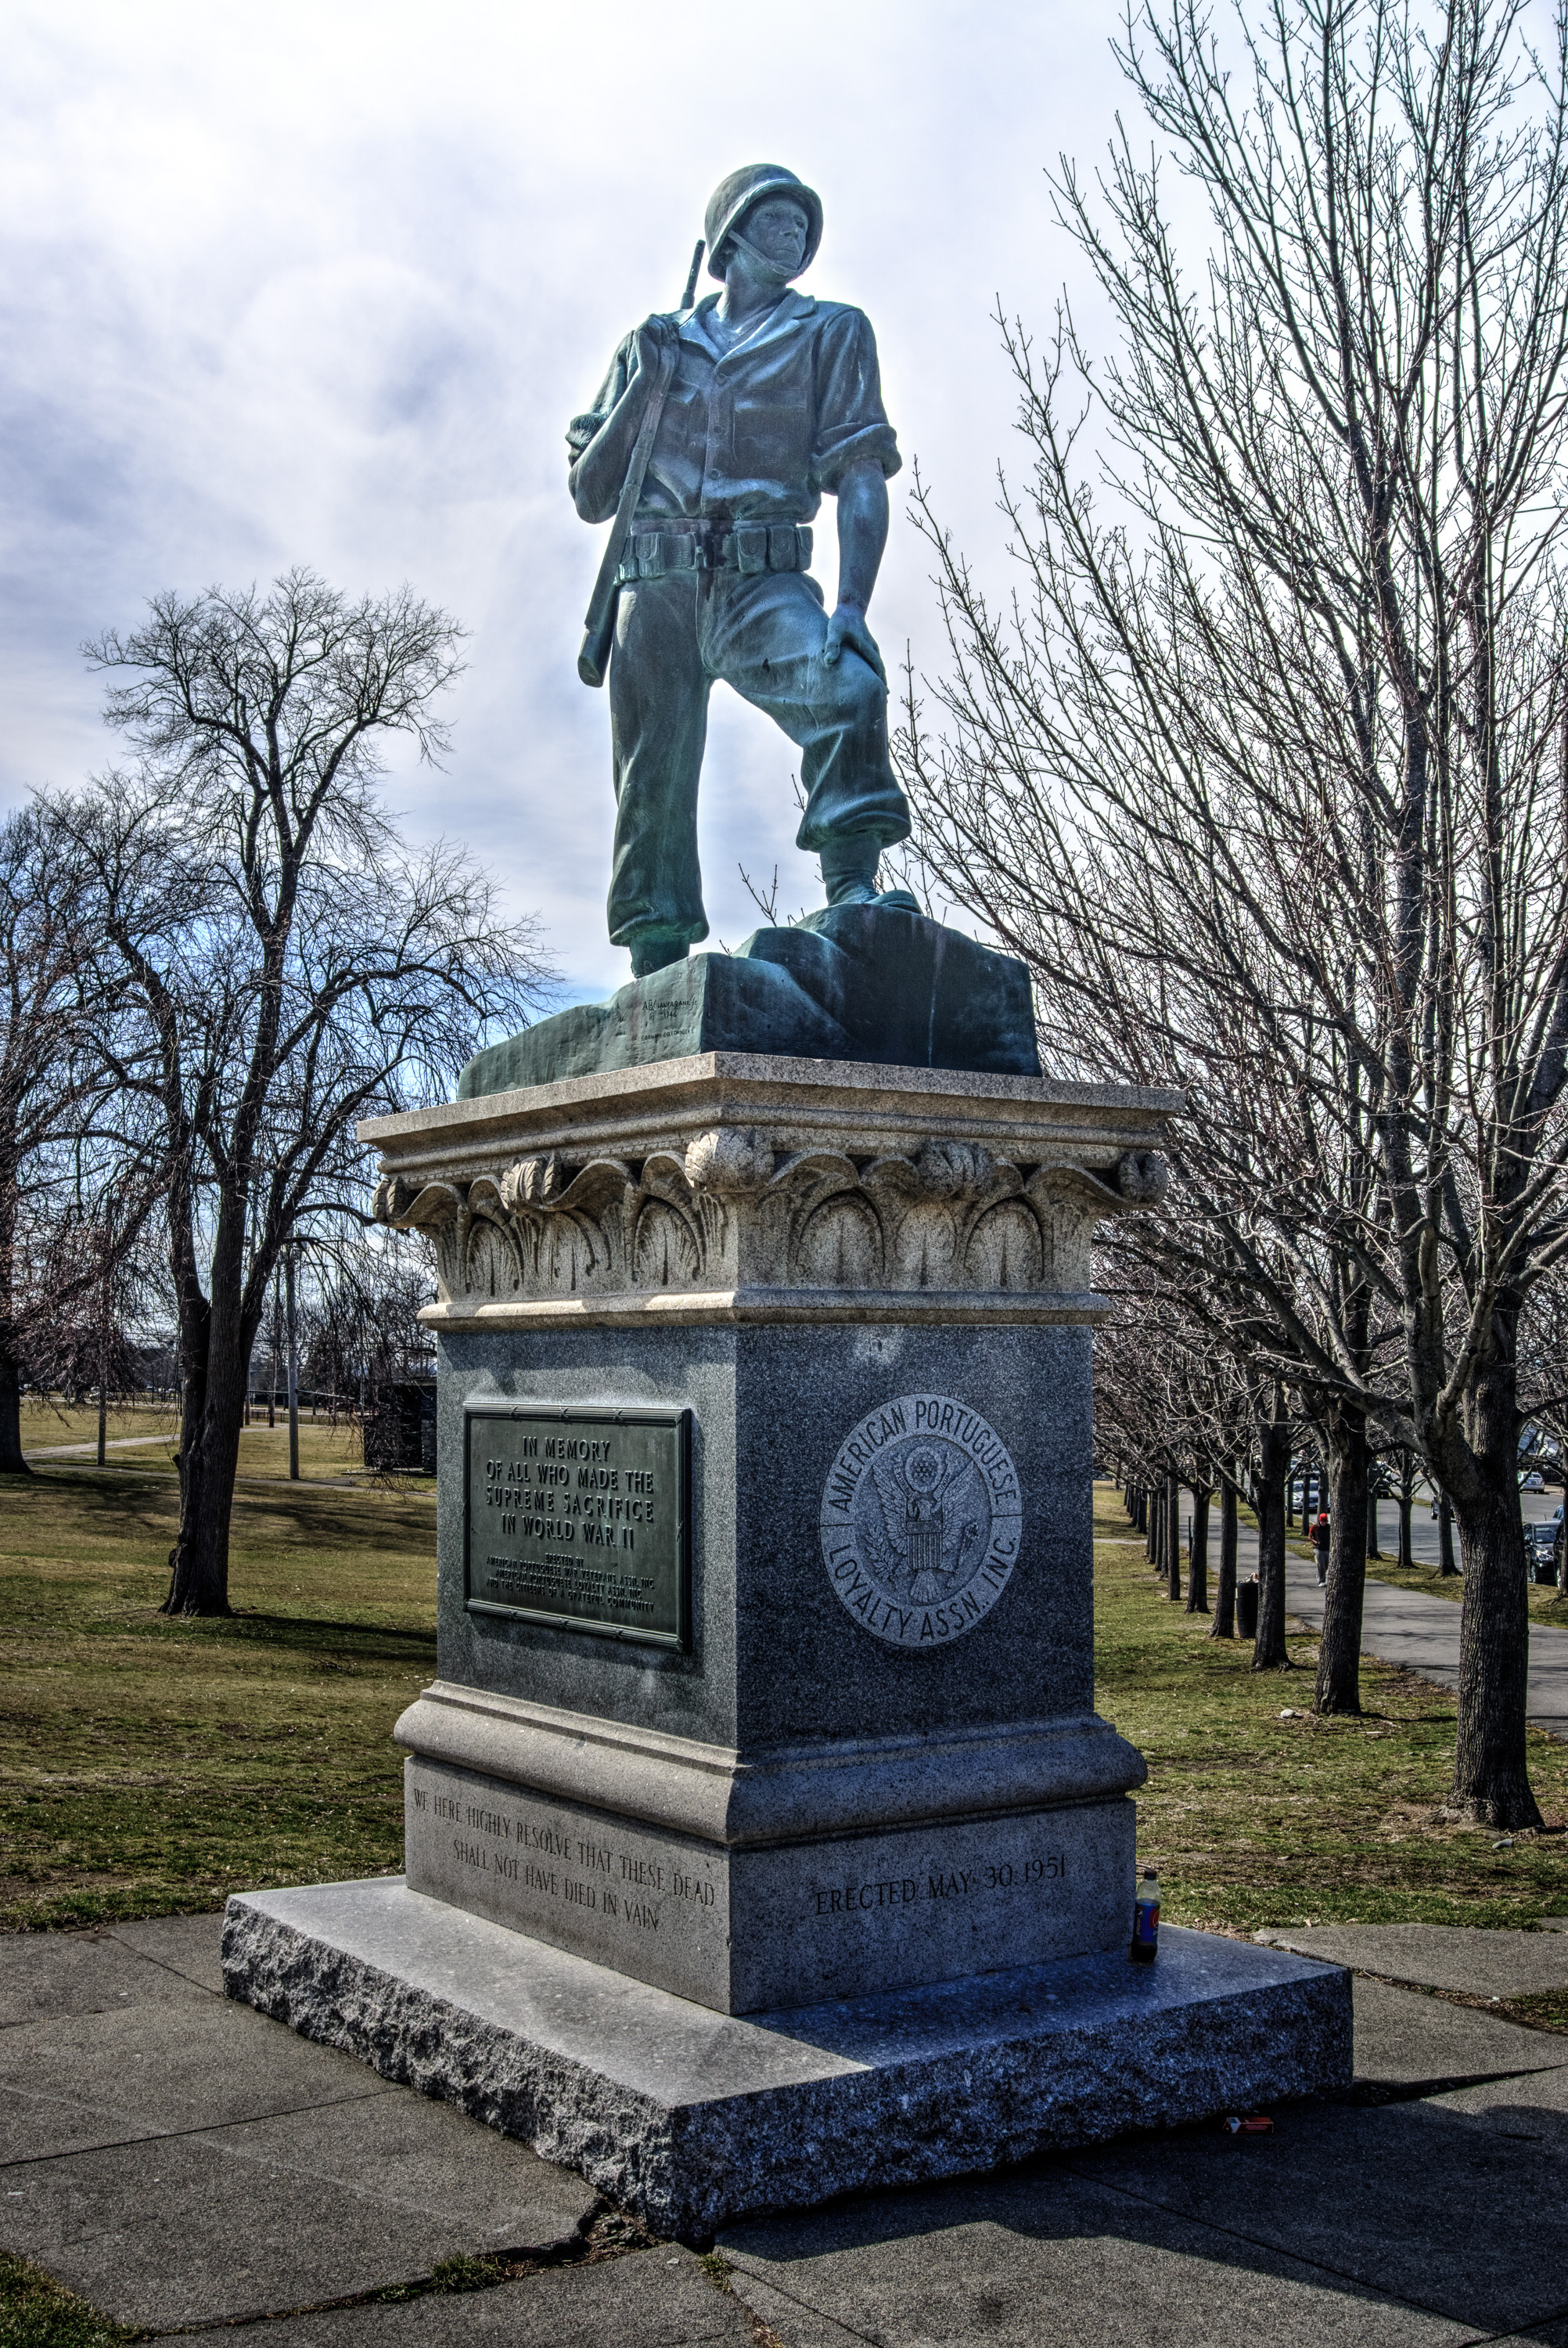 File:WWII memorial at Kennedy Park in Fall River Massachusetts.jpg